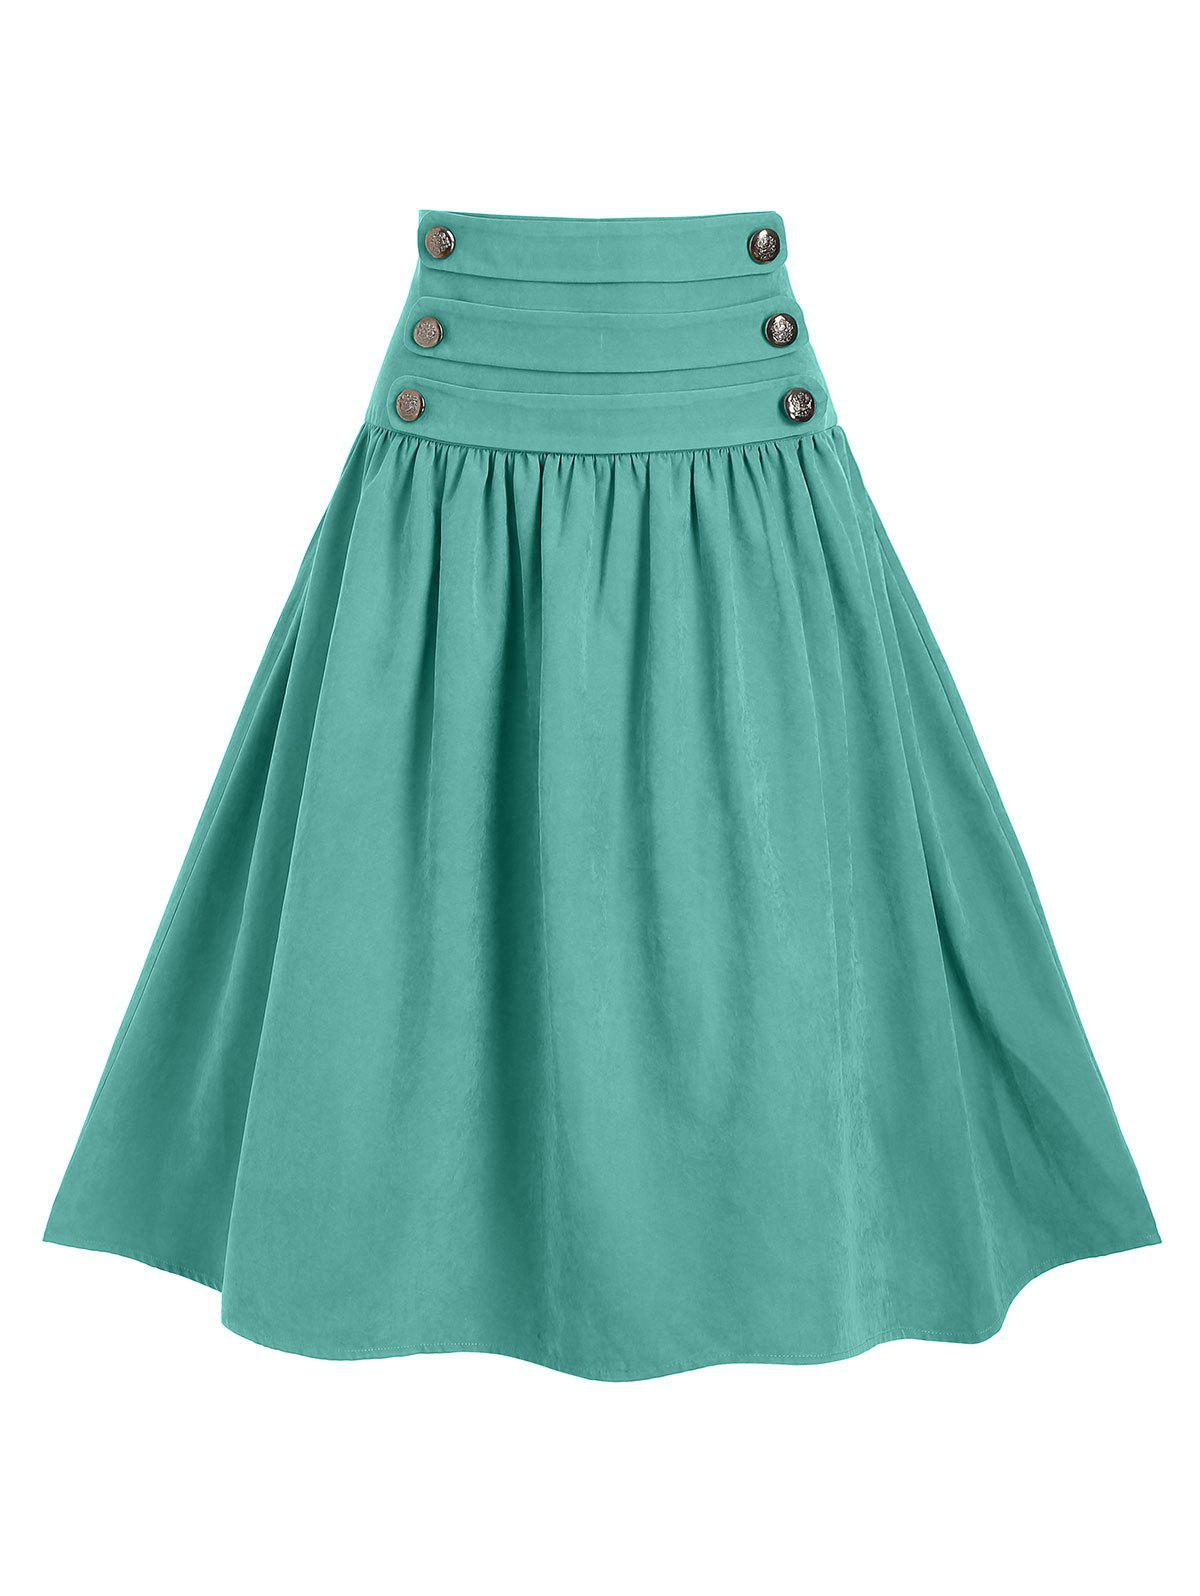 Store Mock Button Tie Back Midi A Line Skirt